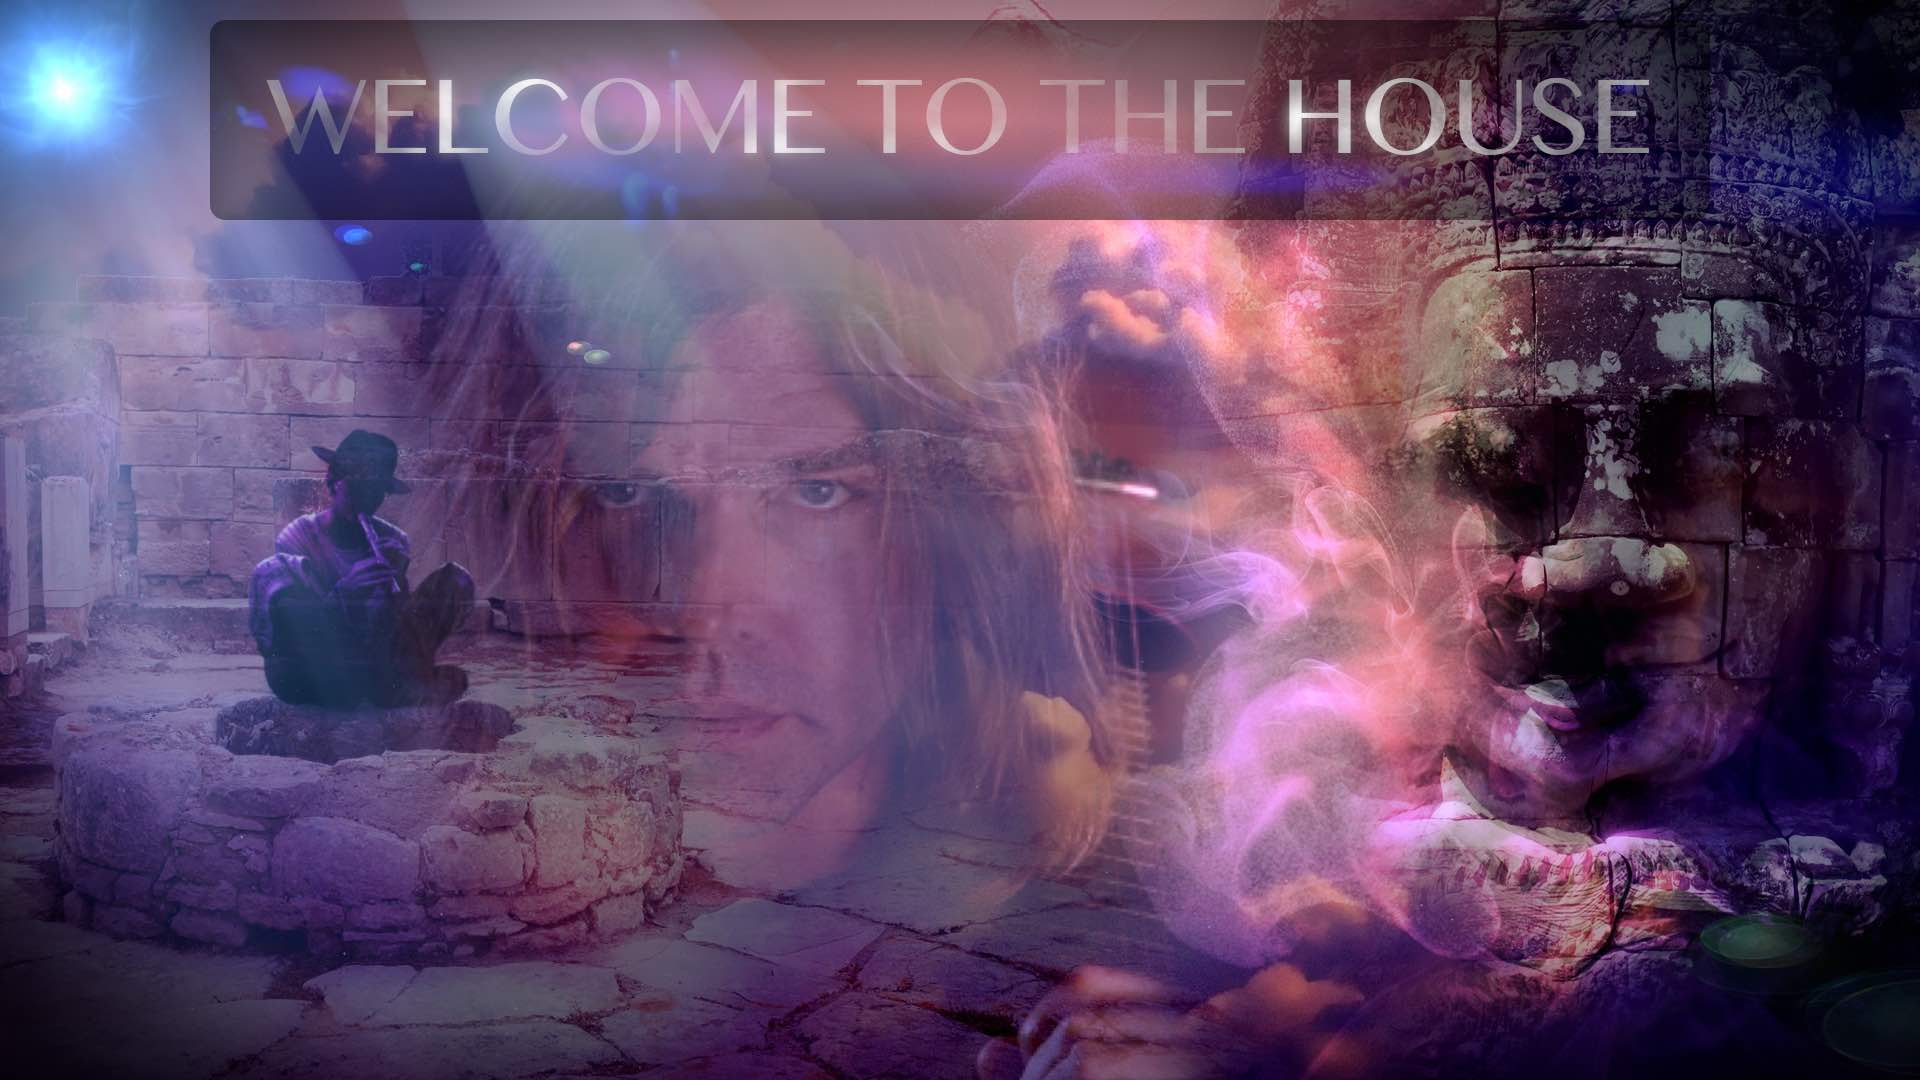 Welcome to The House Image